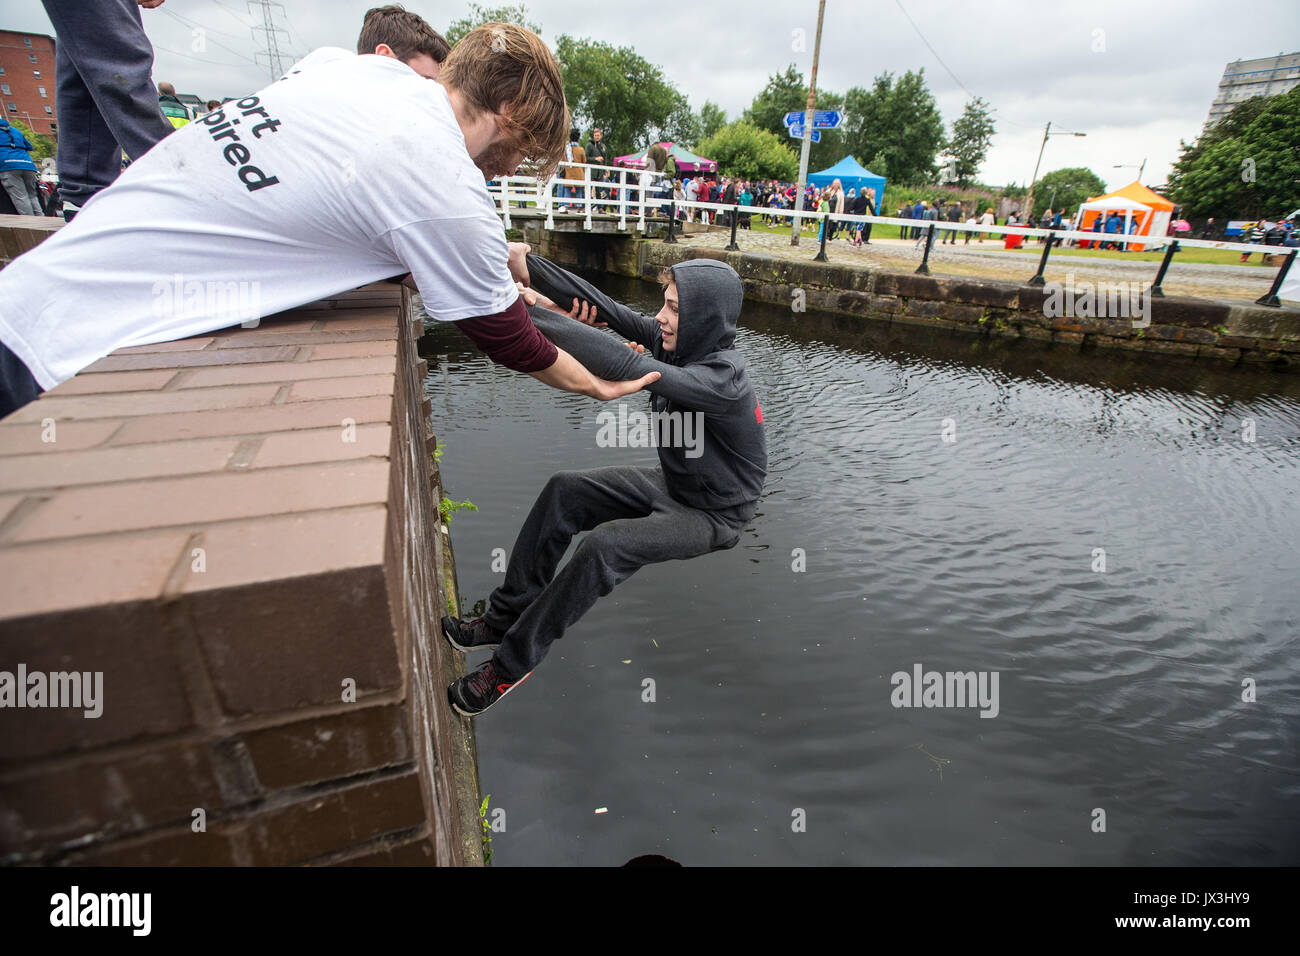 Boys and young men doing parkour - Stock Image